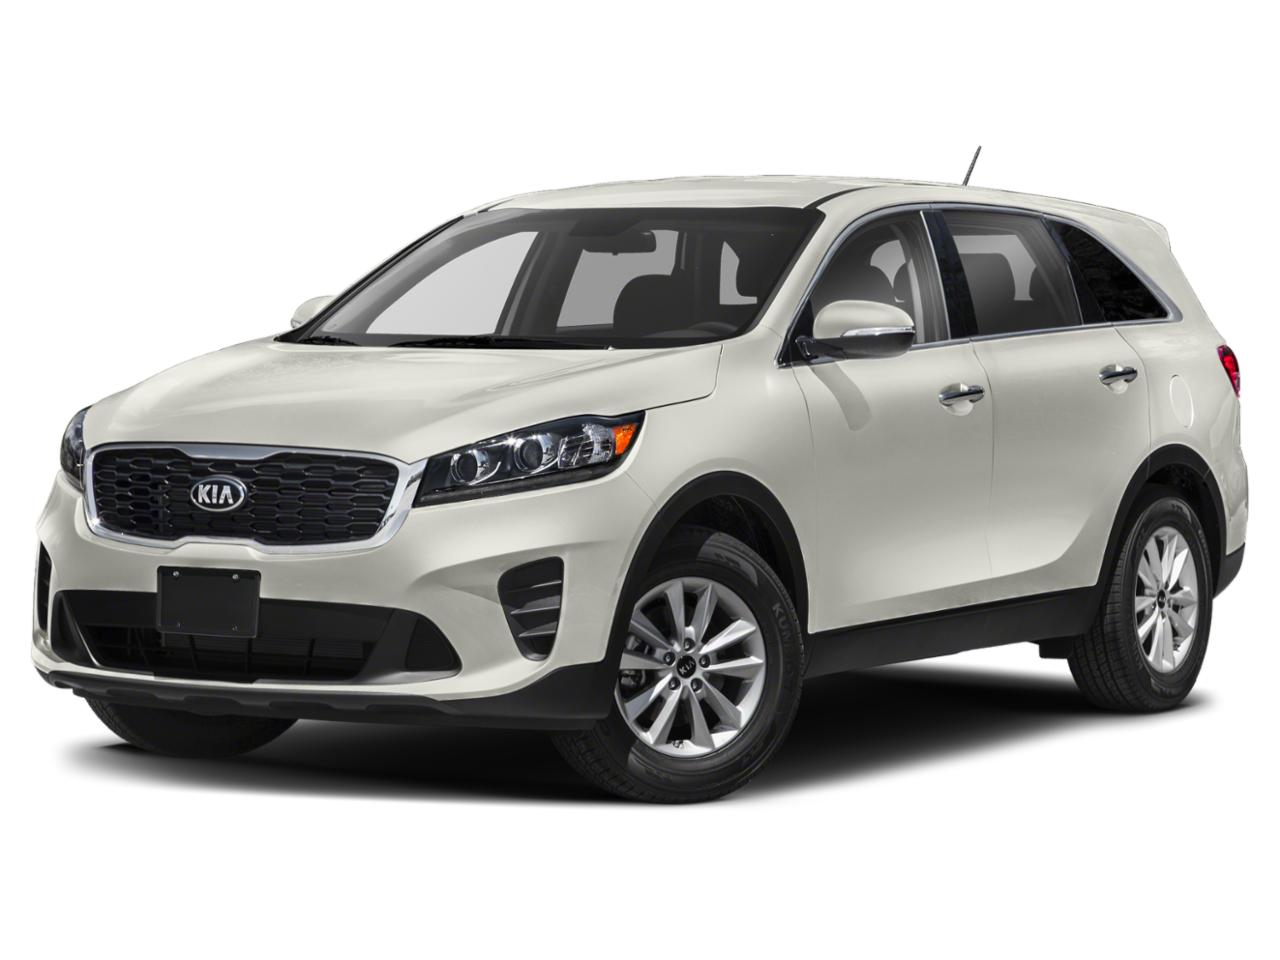 2019 Kia Sorento Vehicle Photo in Appleton, WI 54913